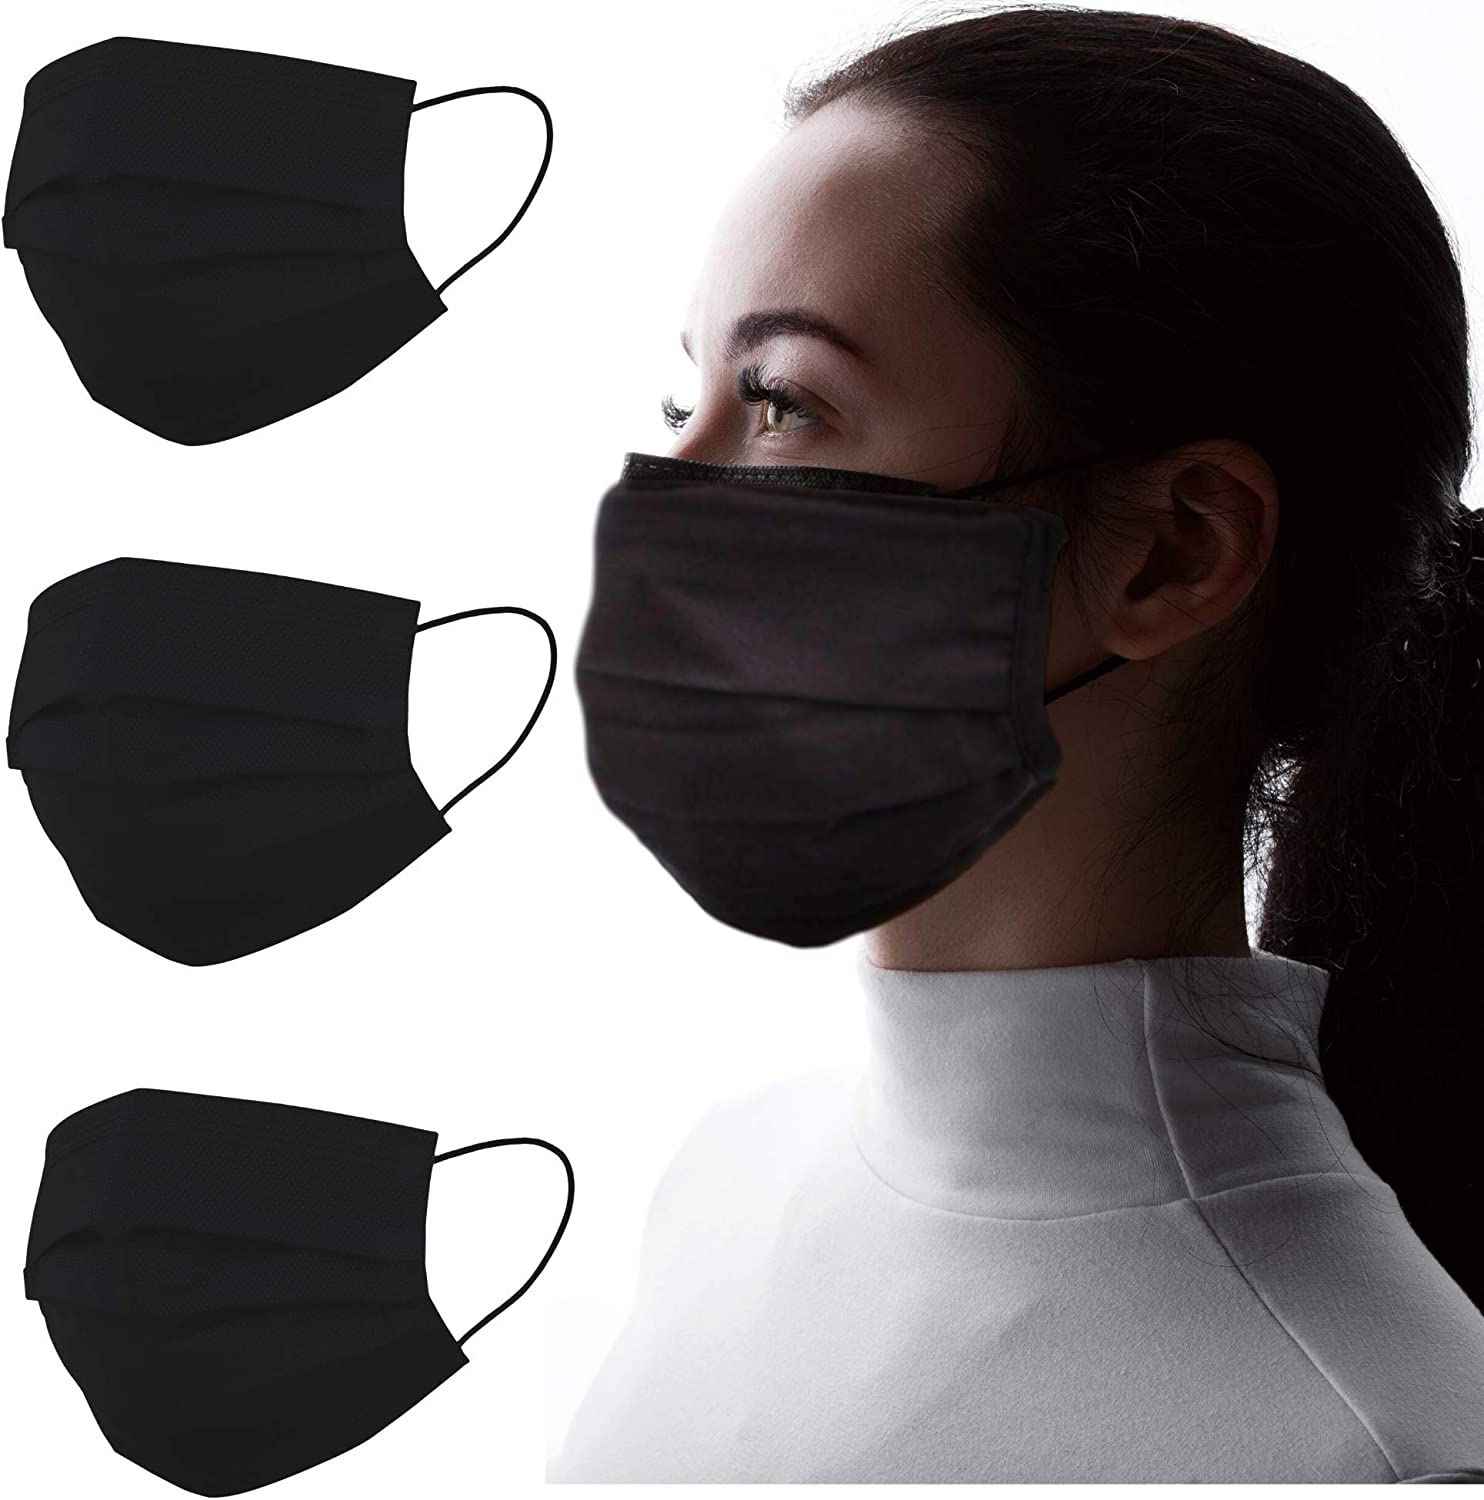 6 Pack Super Soft General Purpose Cloth Face Covering with Filter pocket Washable Collectible Souvenir Adult /& Youth Size